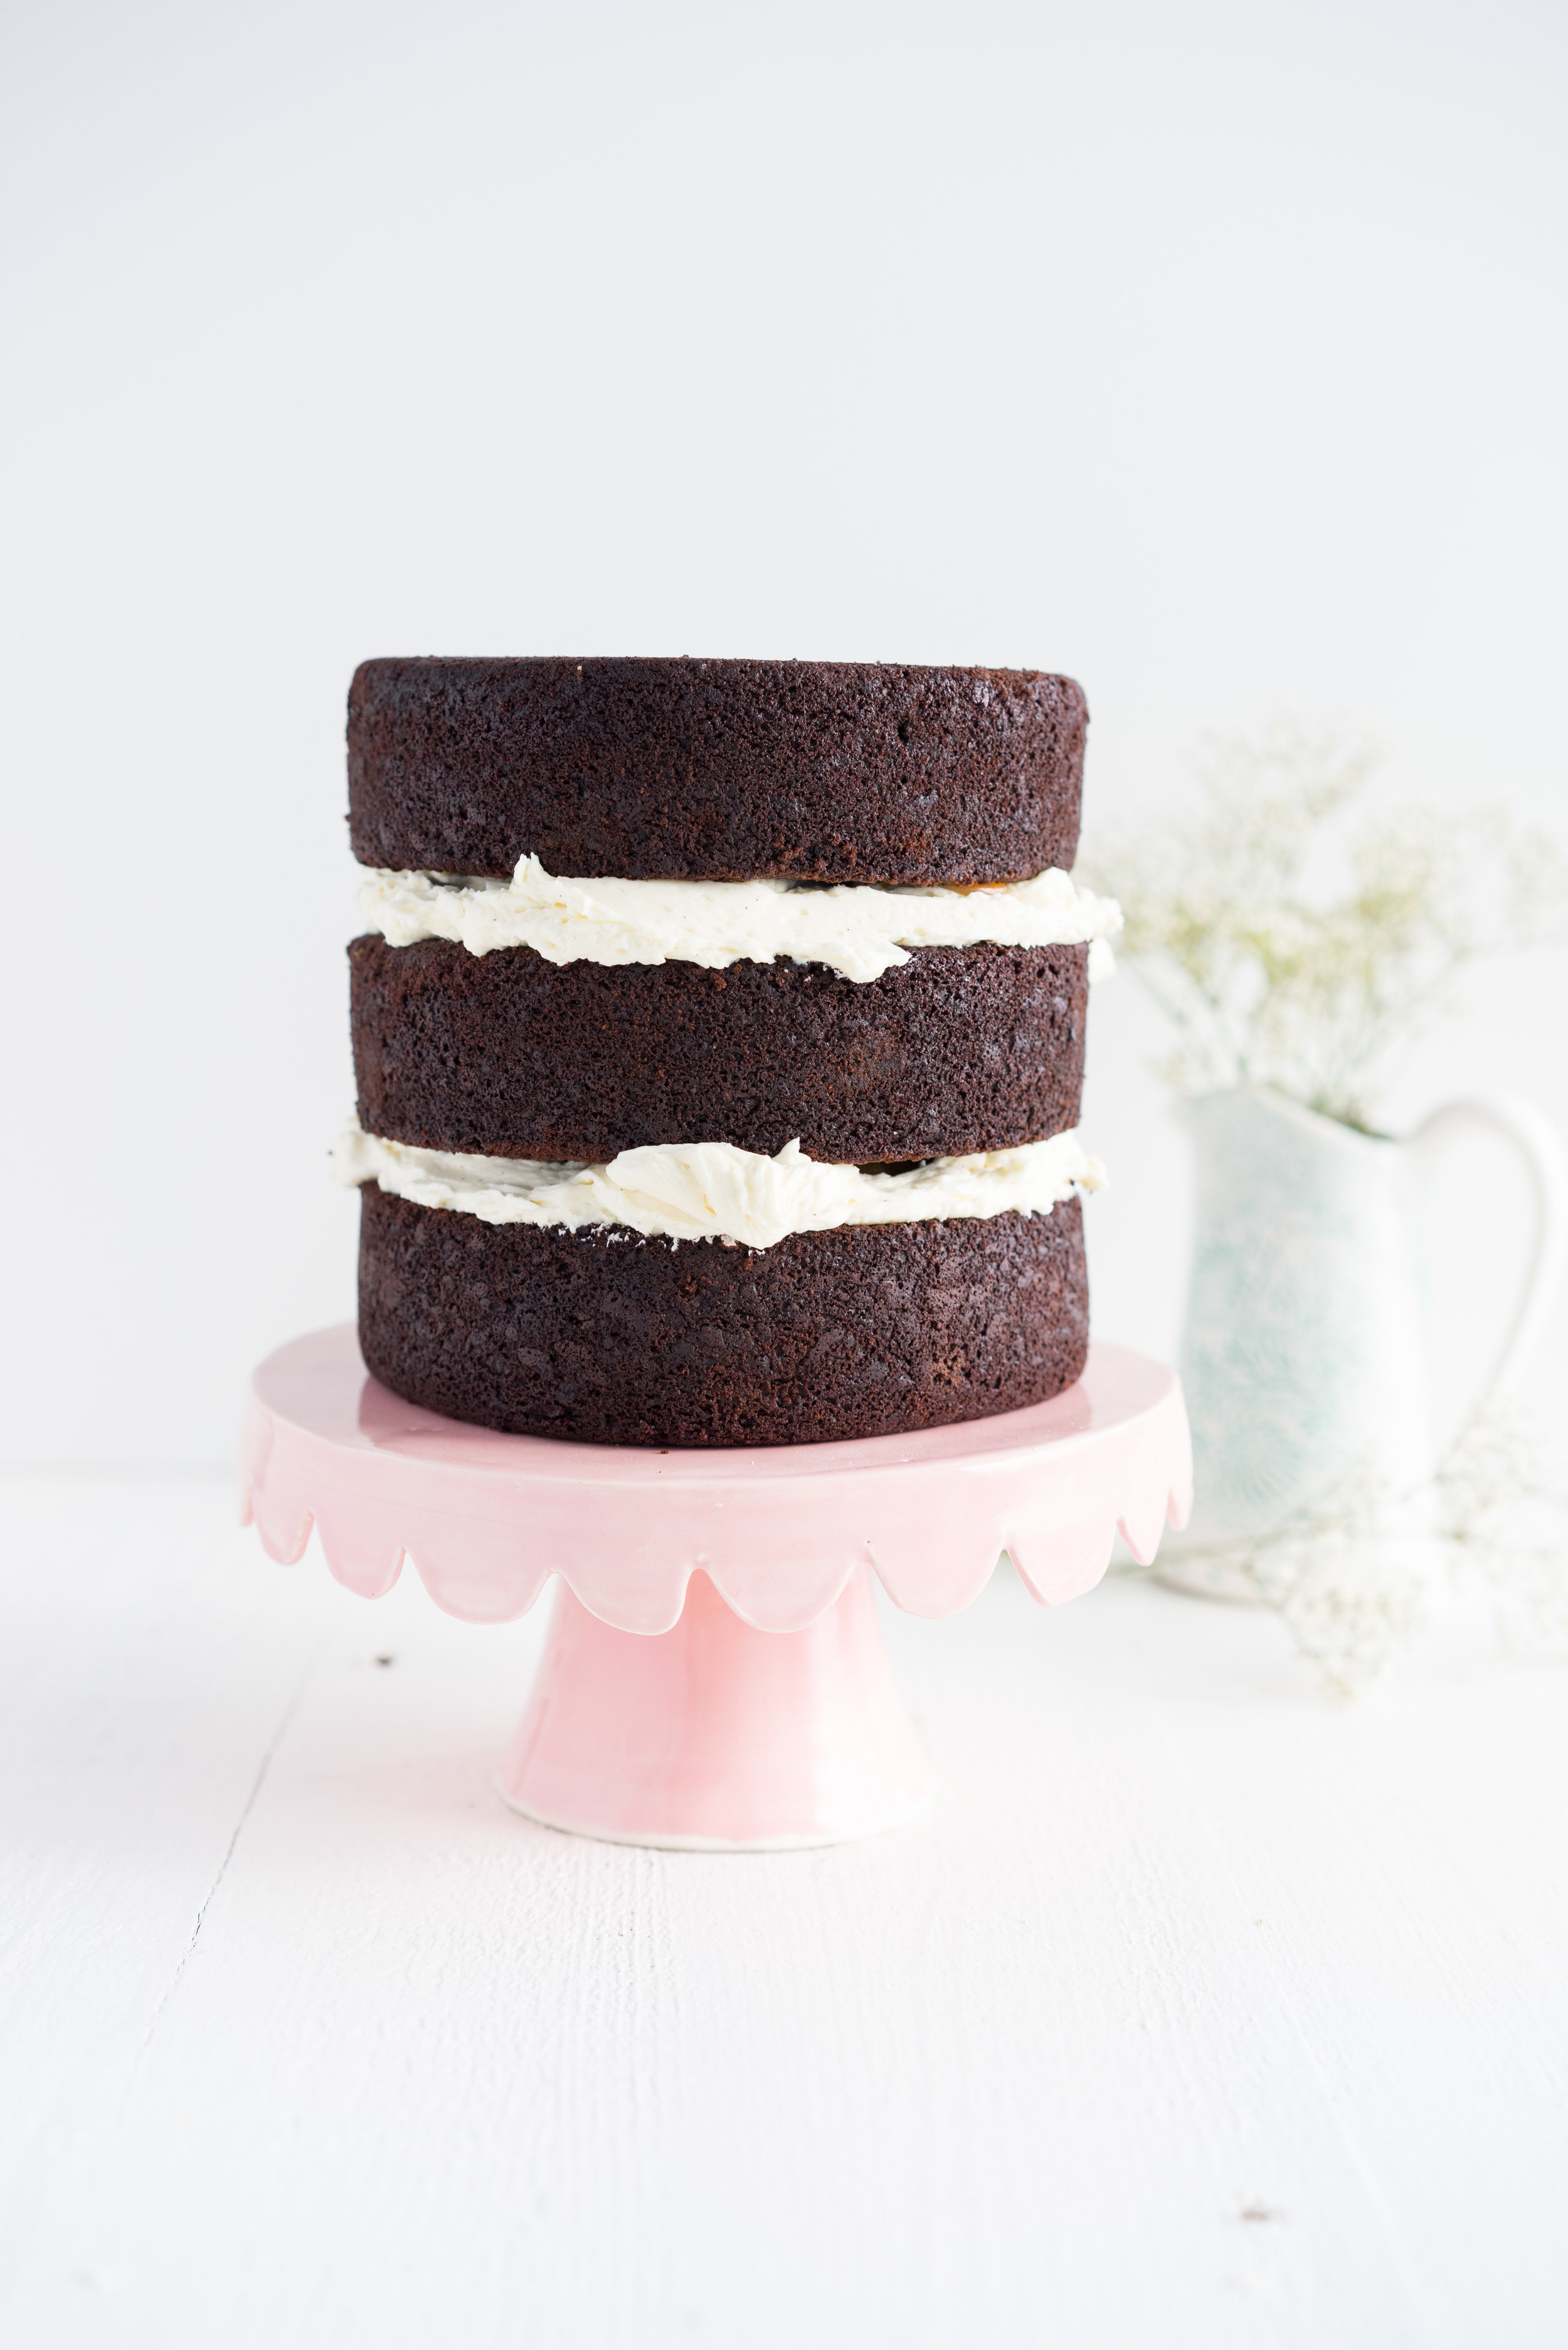 Gluten Free Chocolate Cake with Salted Caramel and Mascarpone German Buttercream. The perfect go-to cake: layers of rich mud cake, smooth salted caramel, and silky german buttercream with a hint of mascarpone.